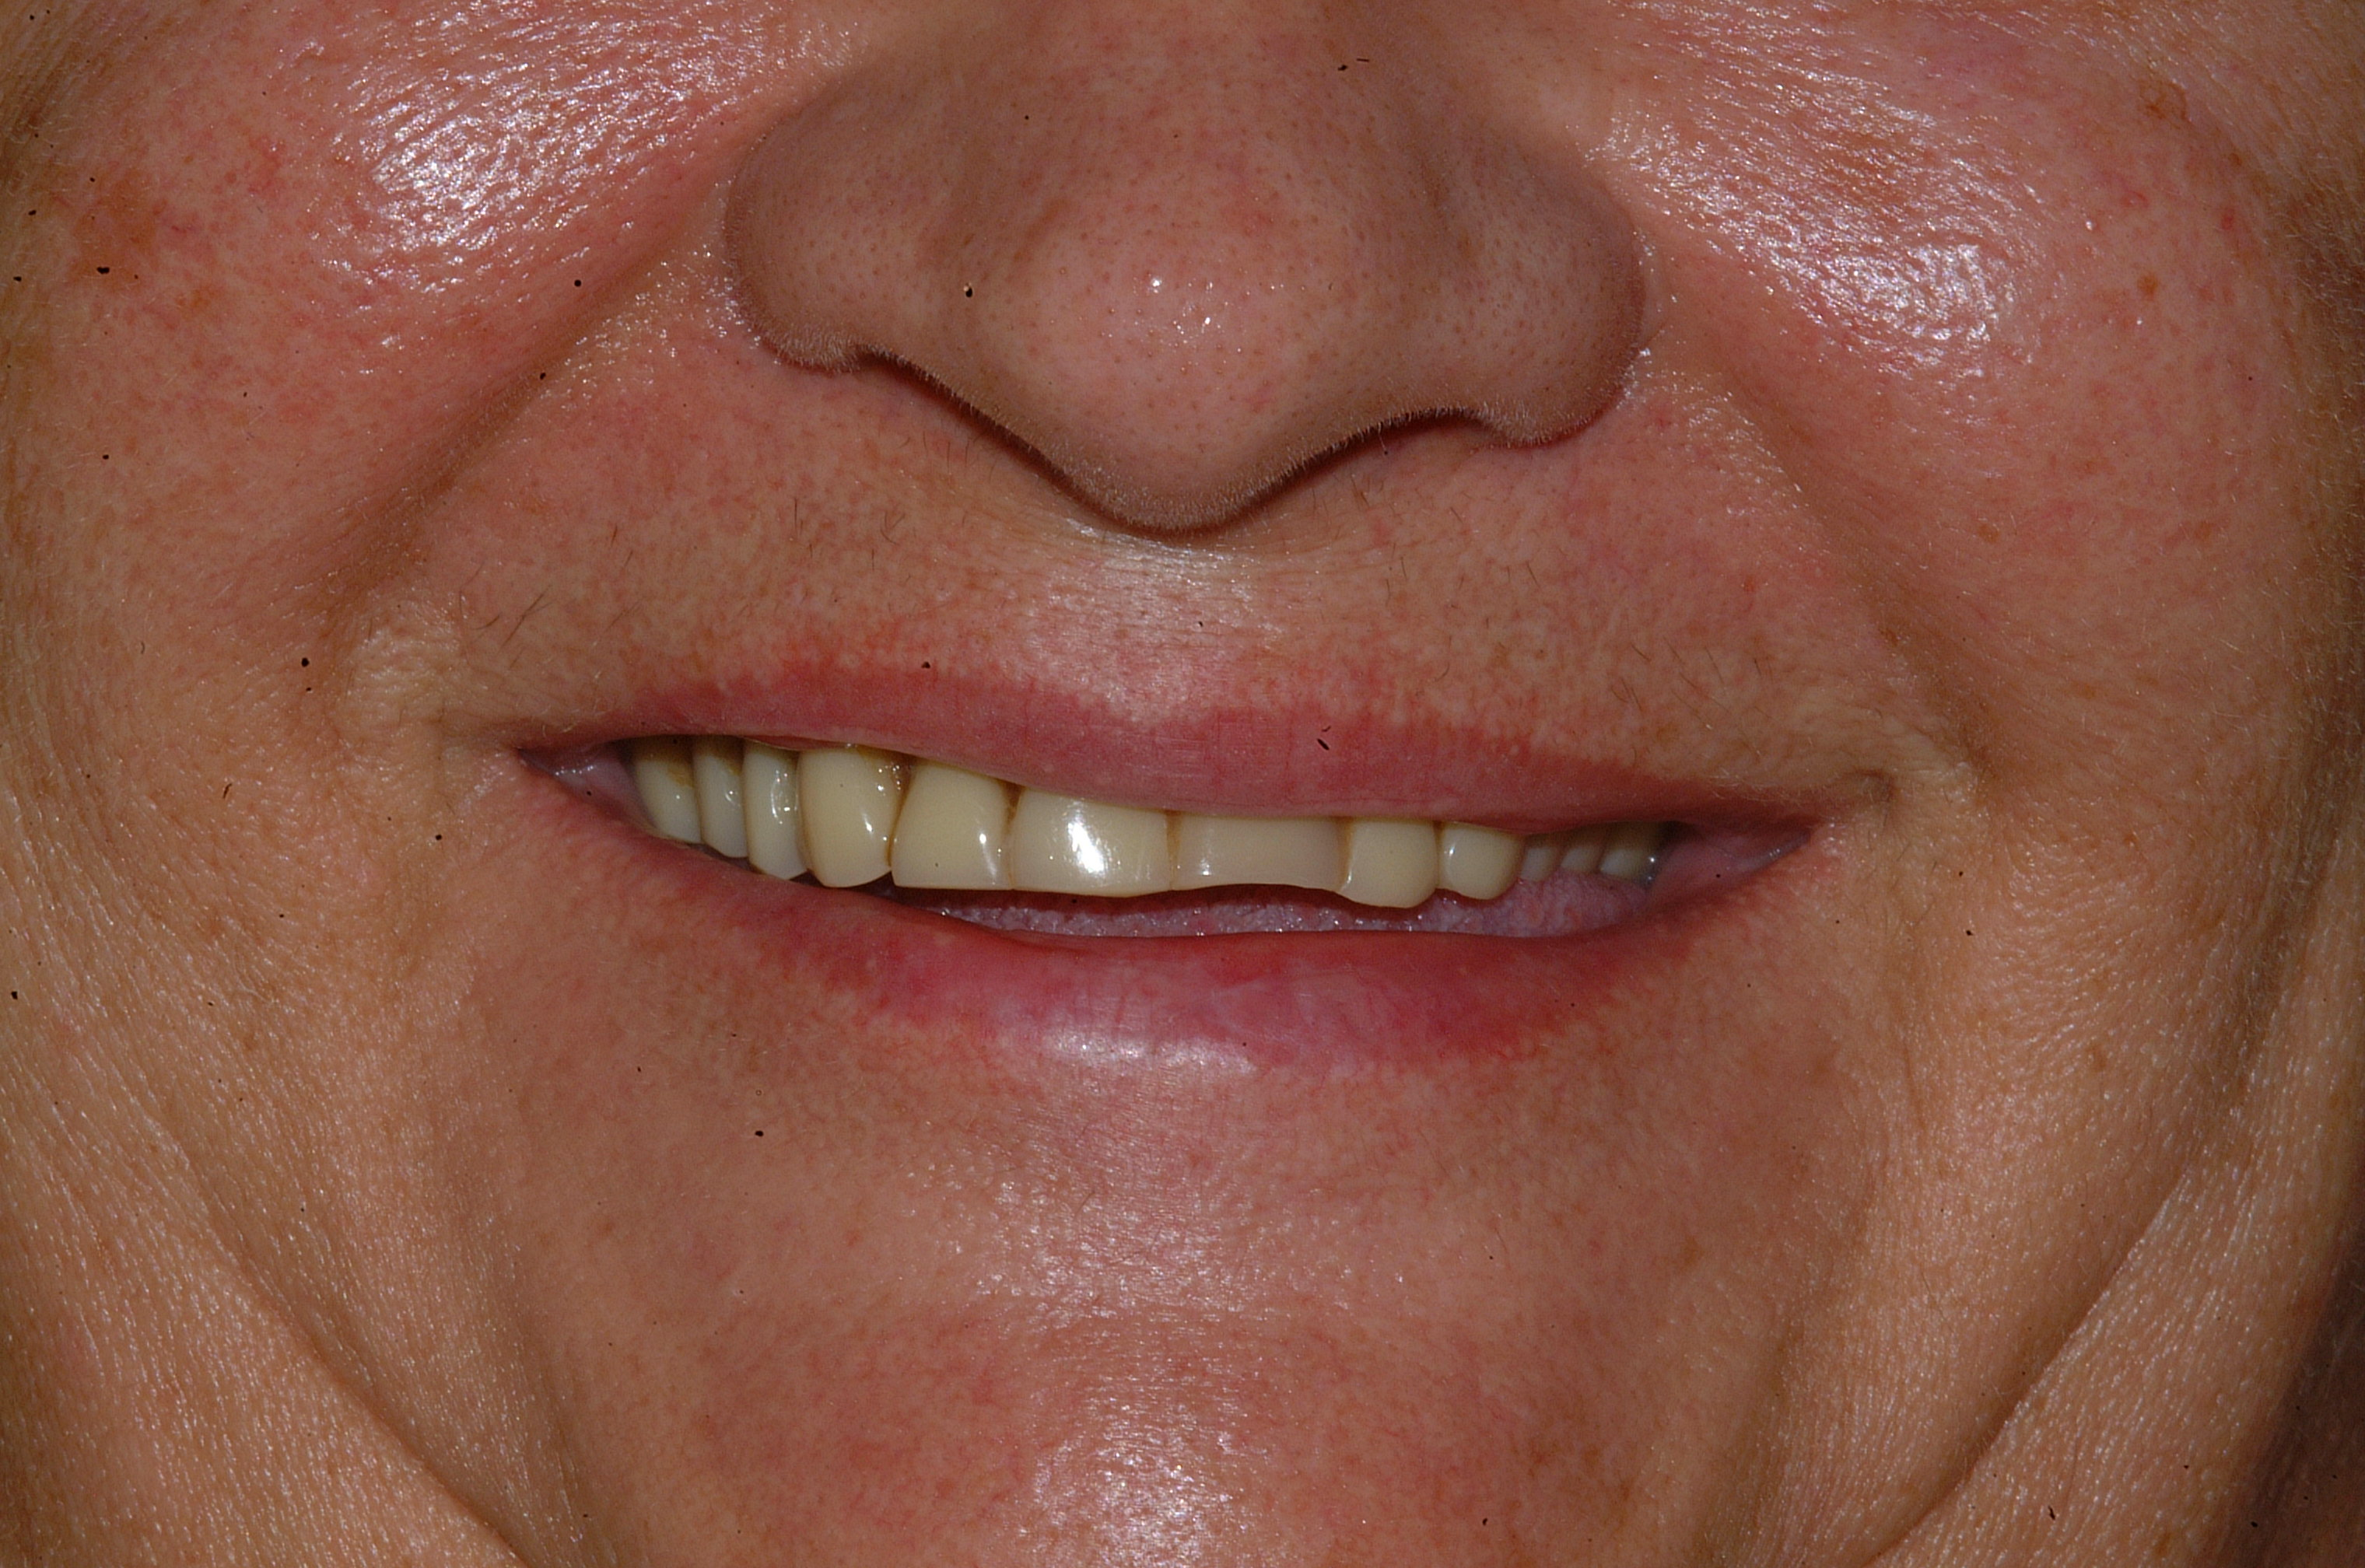 Worn movable denture